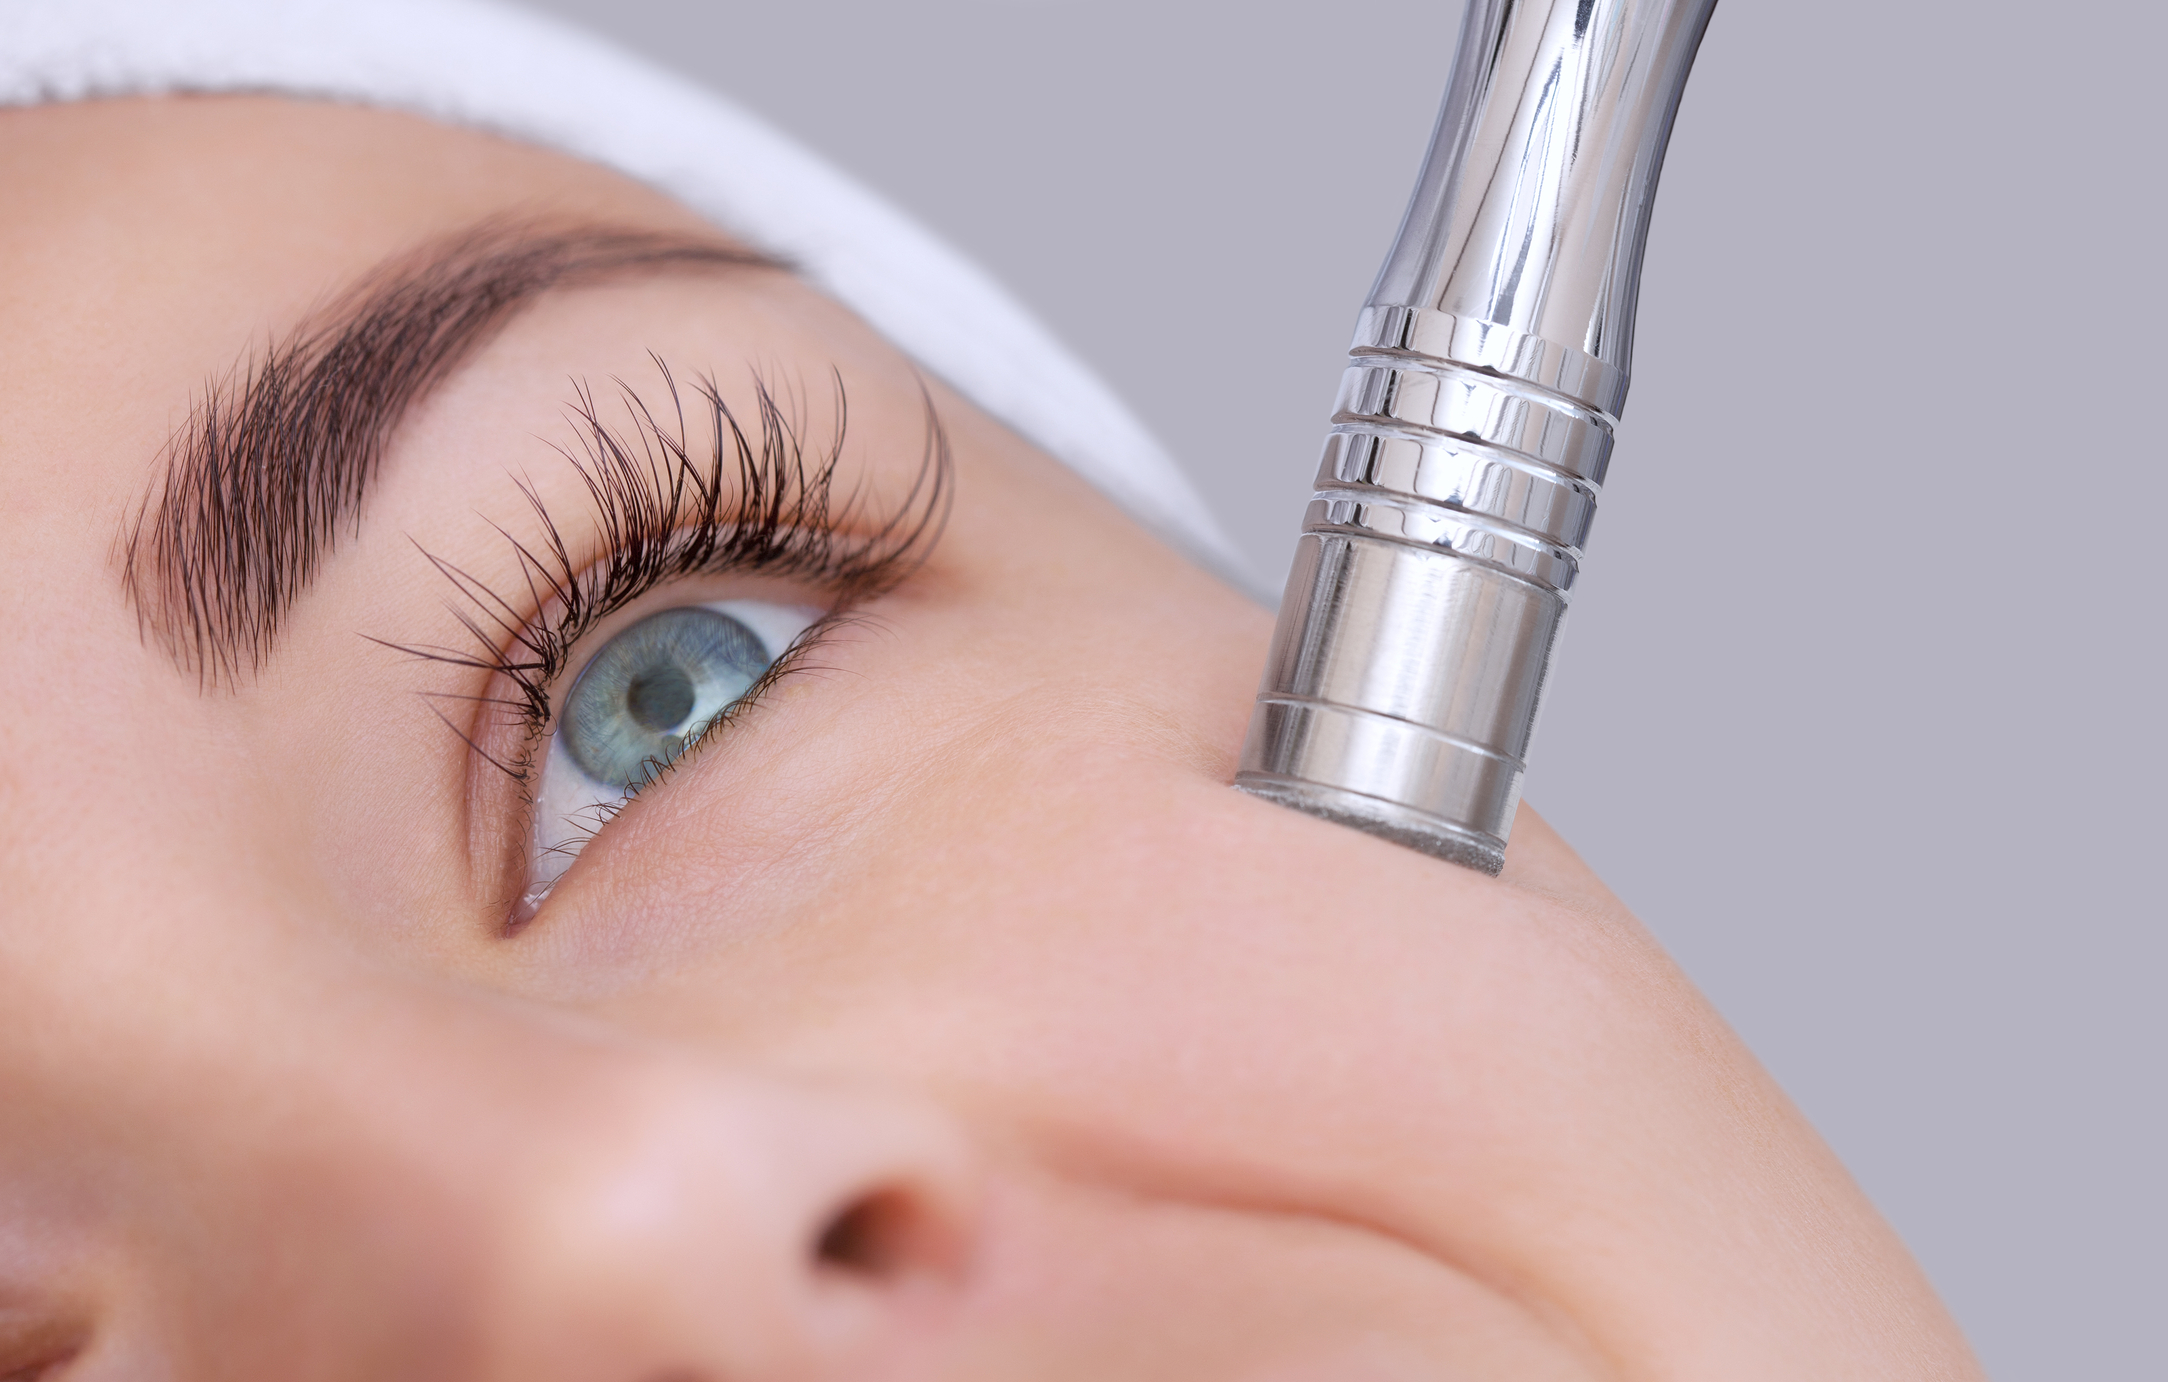 Two Types of Microdermabrasion